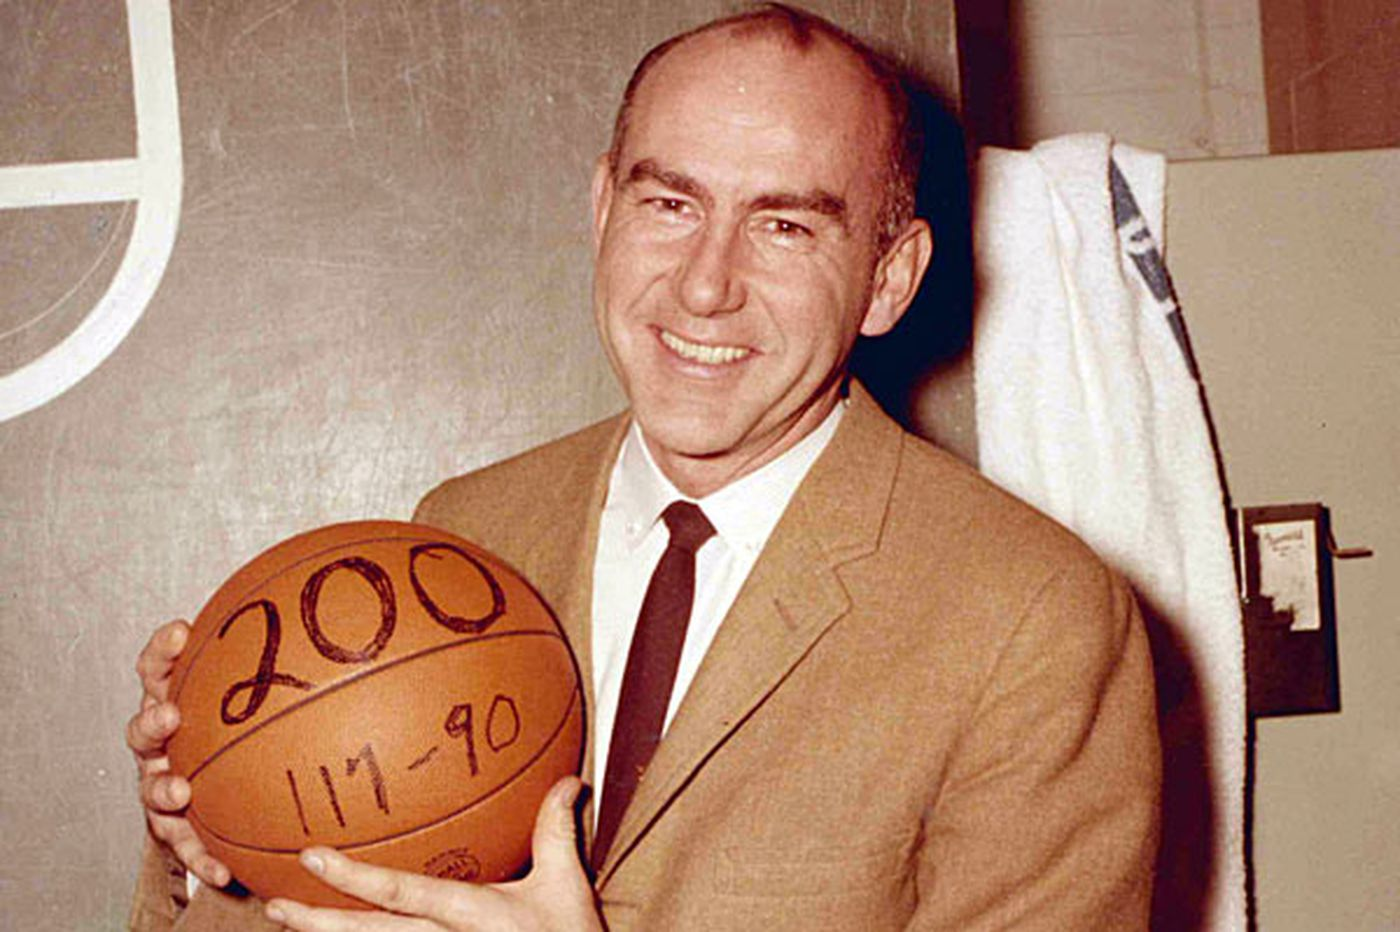 Some facts and figures about Dr. Jack Ramsay